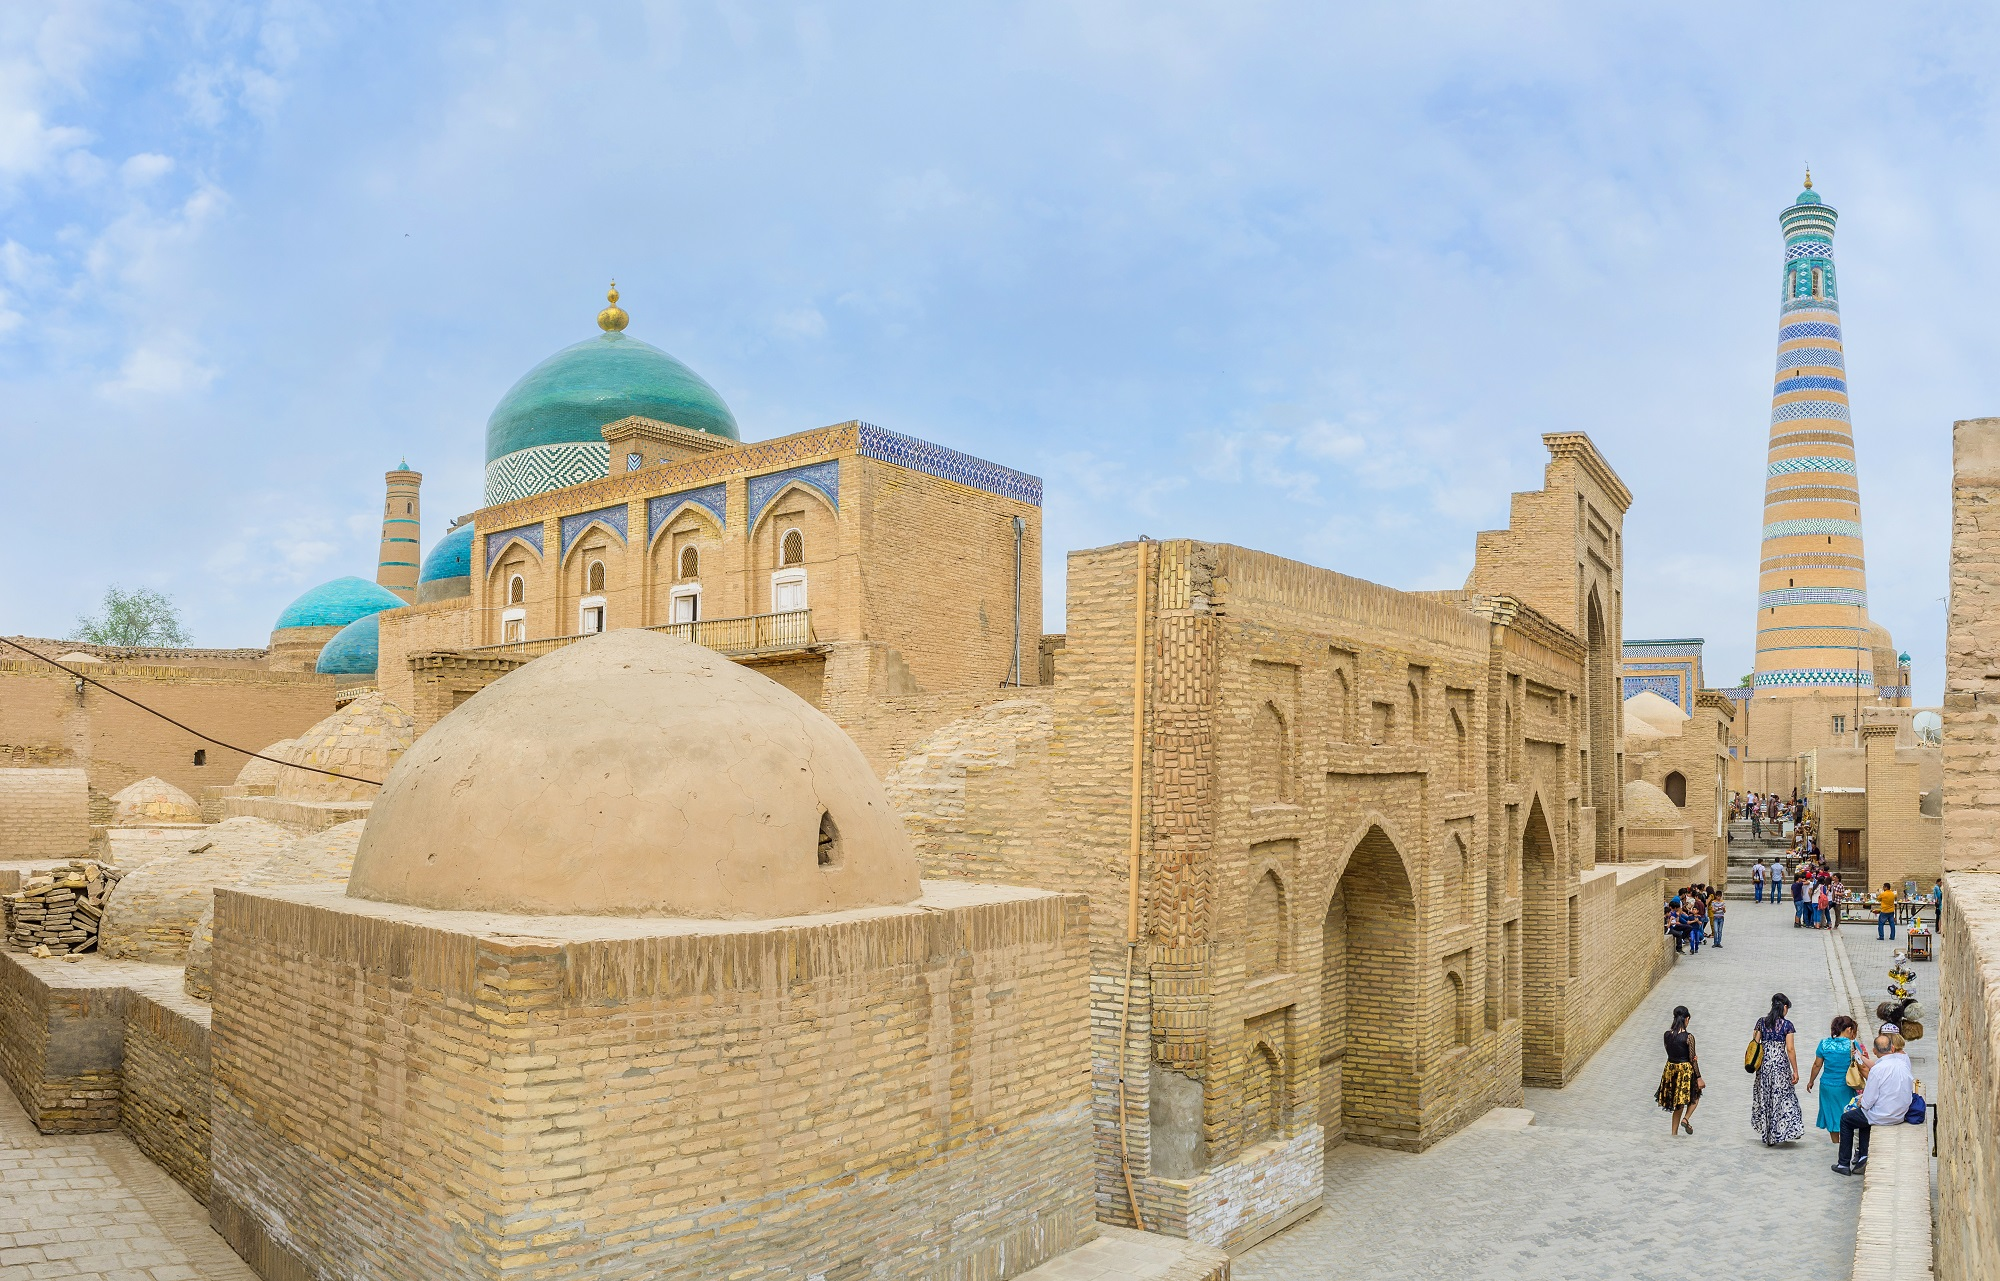 KHIVA, UZBEKISTAN - MAY 3, 2015: The old town built of the ochra brick and decorated with colorful glazed tile, on May 3 in Khiva.